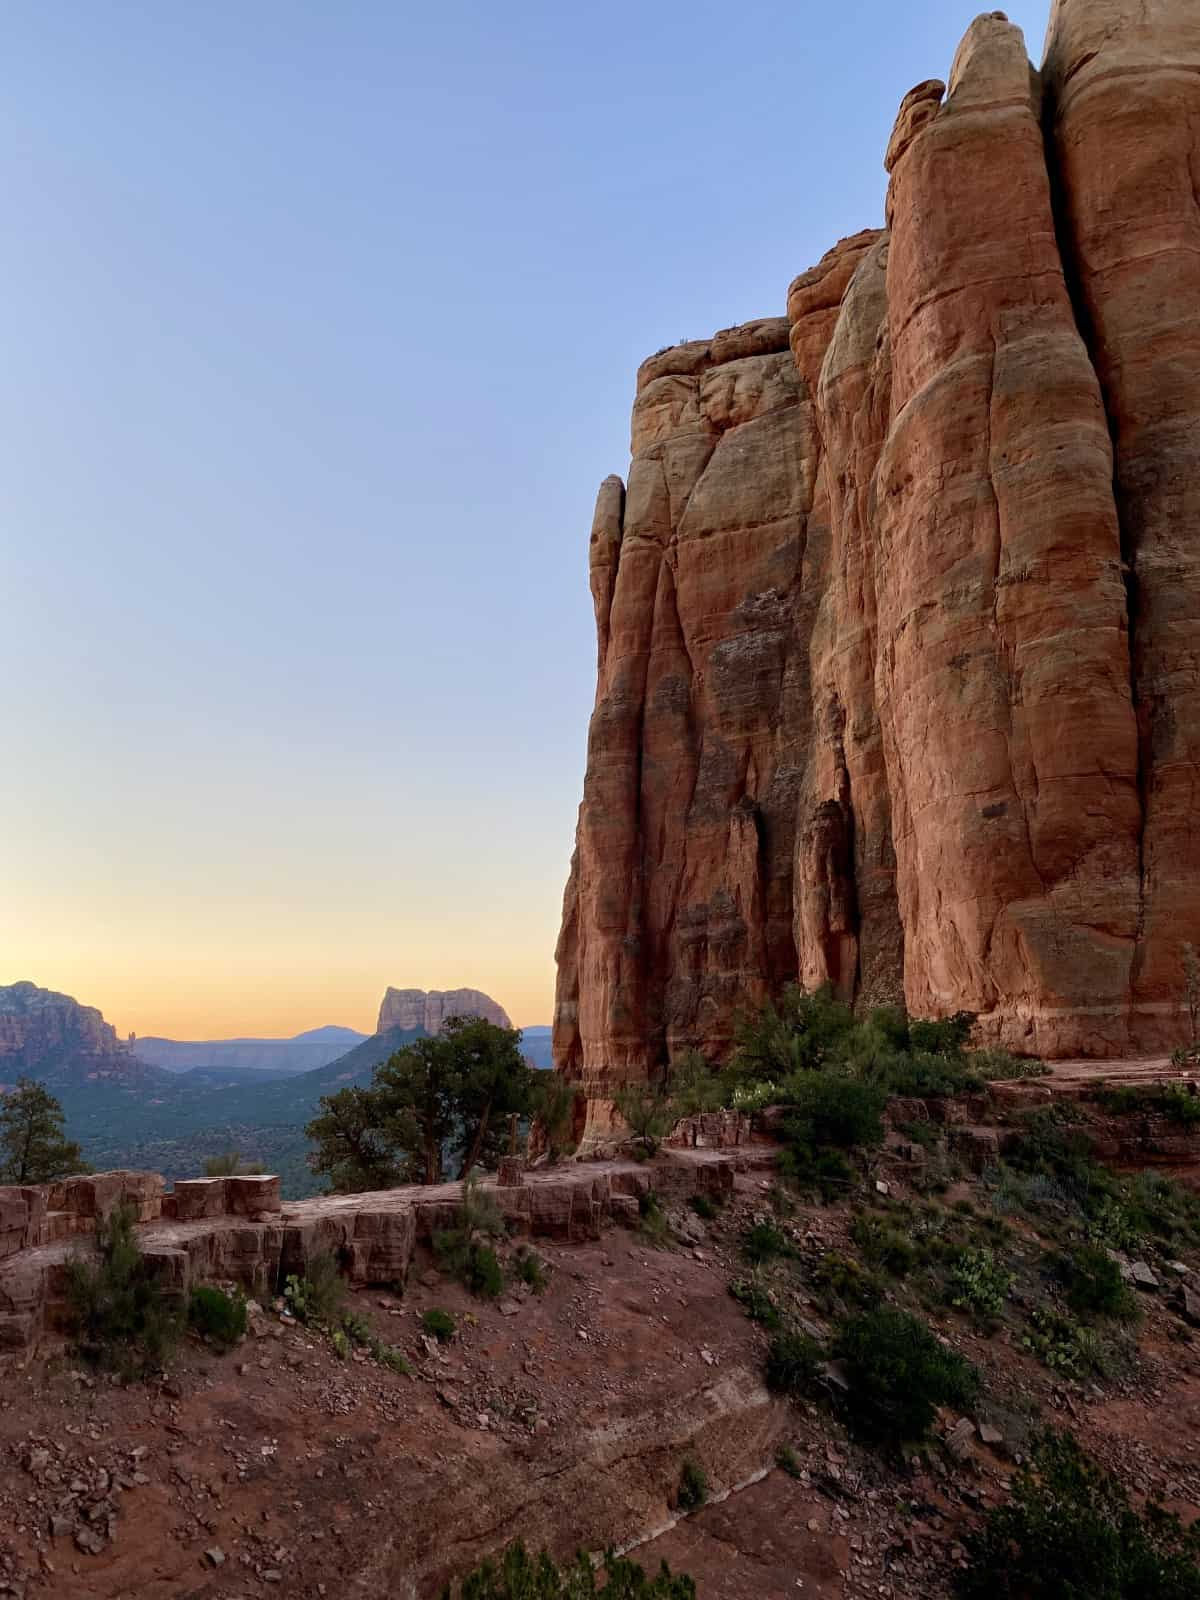 What It's Like Hiking Sedona's Cathedral Rock at Sunrise | How to plan your trip...this iconic & challenging hike is stunning any time of day, but sunrise is particularly magical | One Girl, Whole World